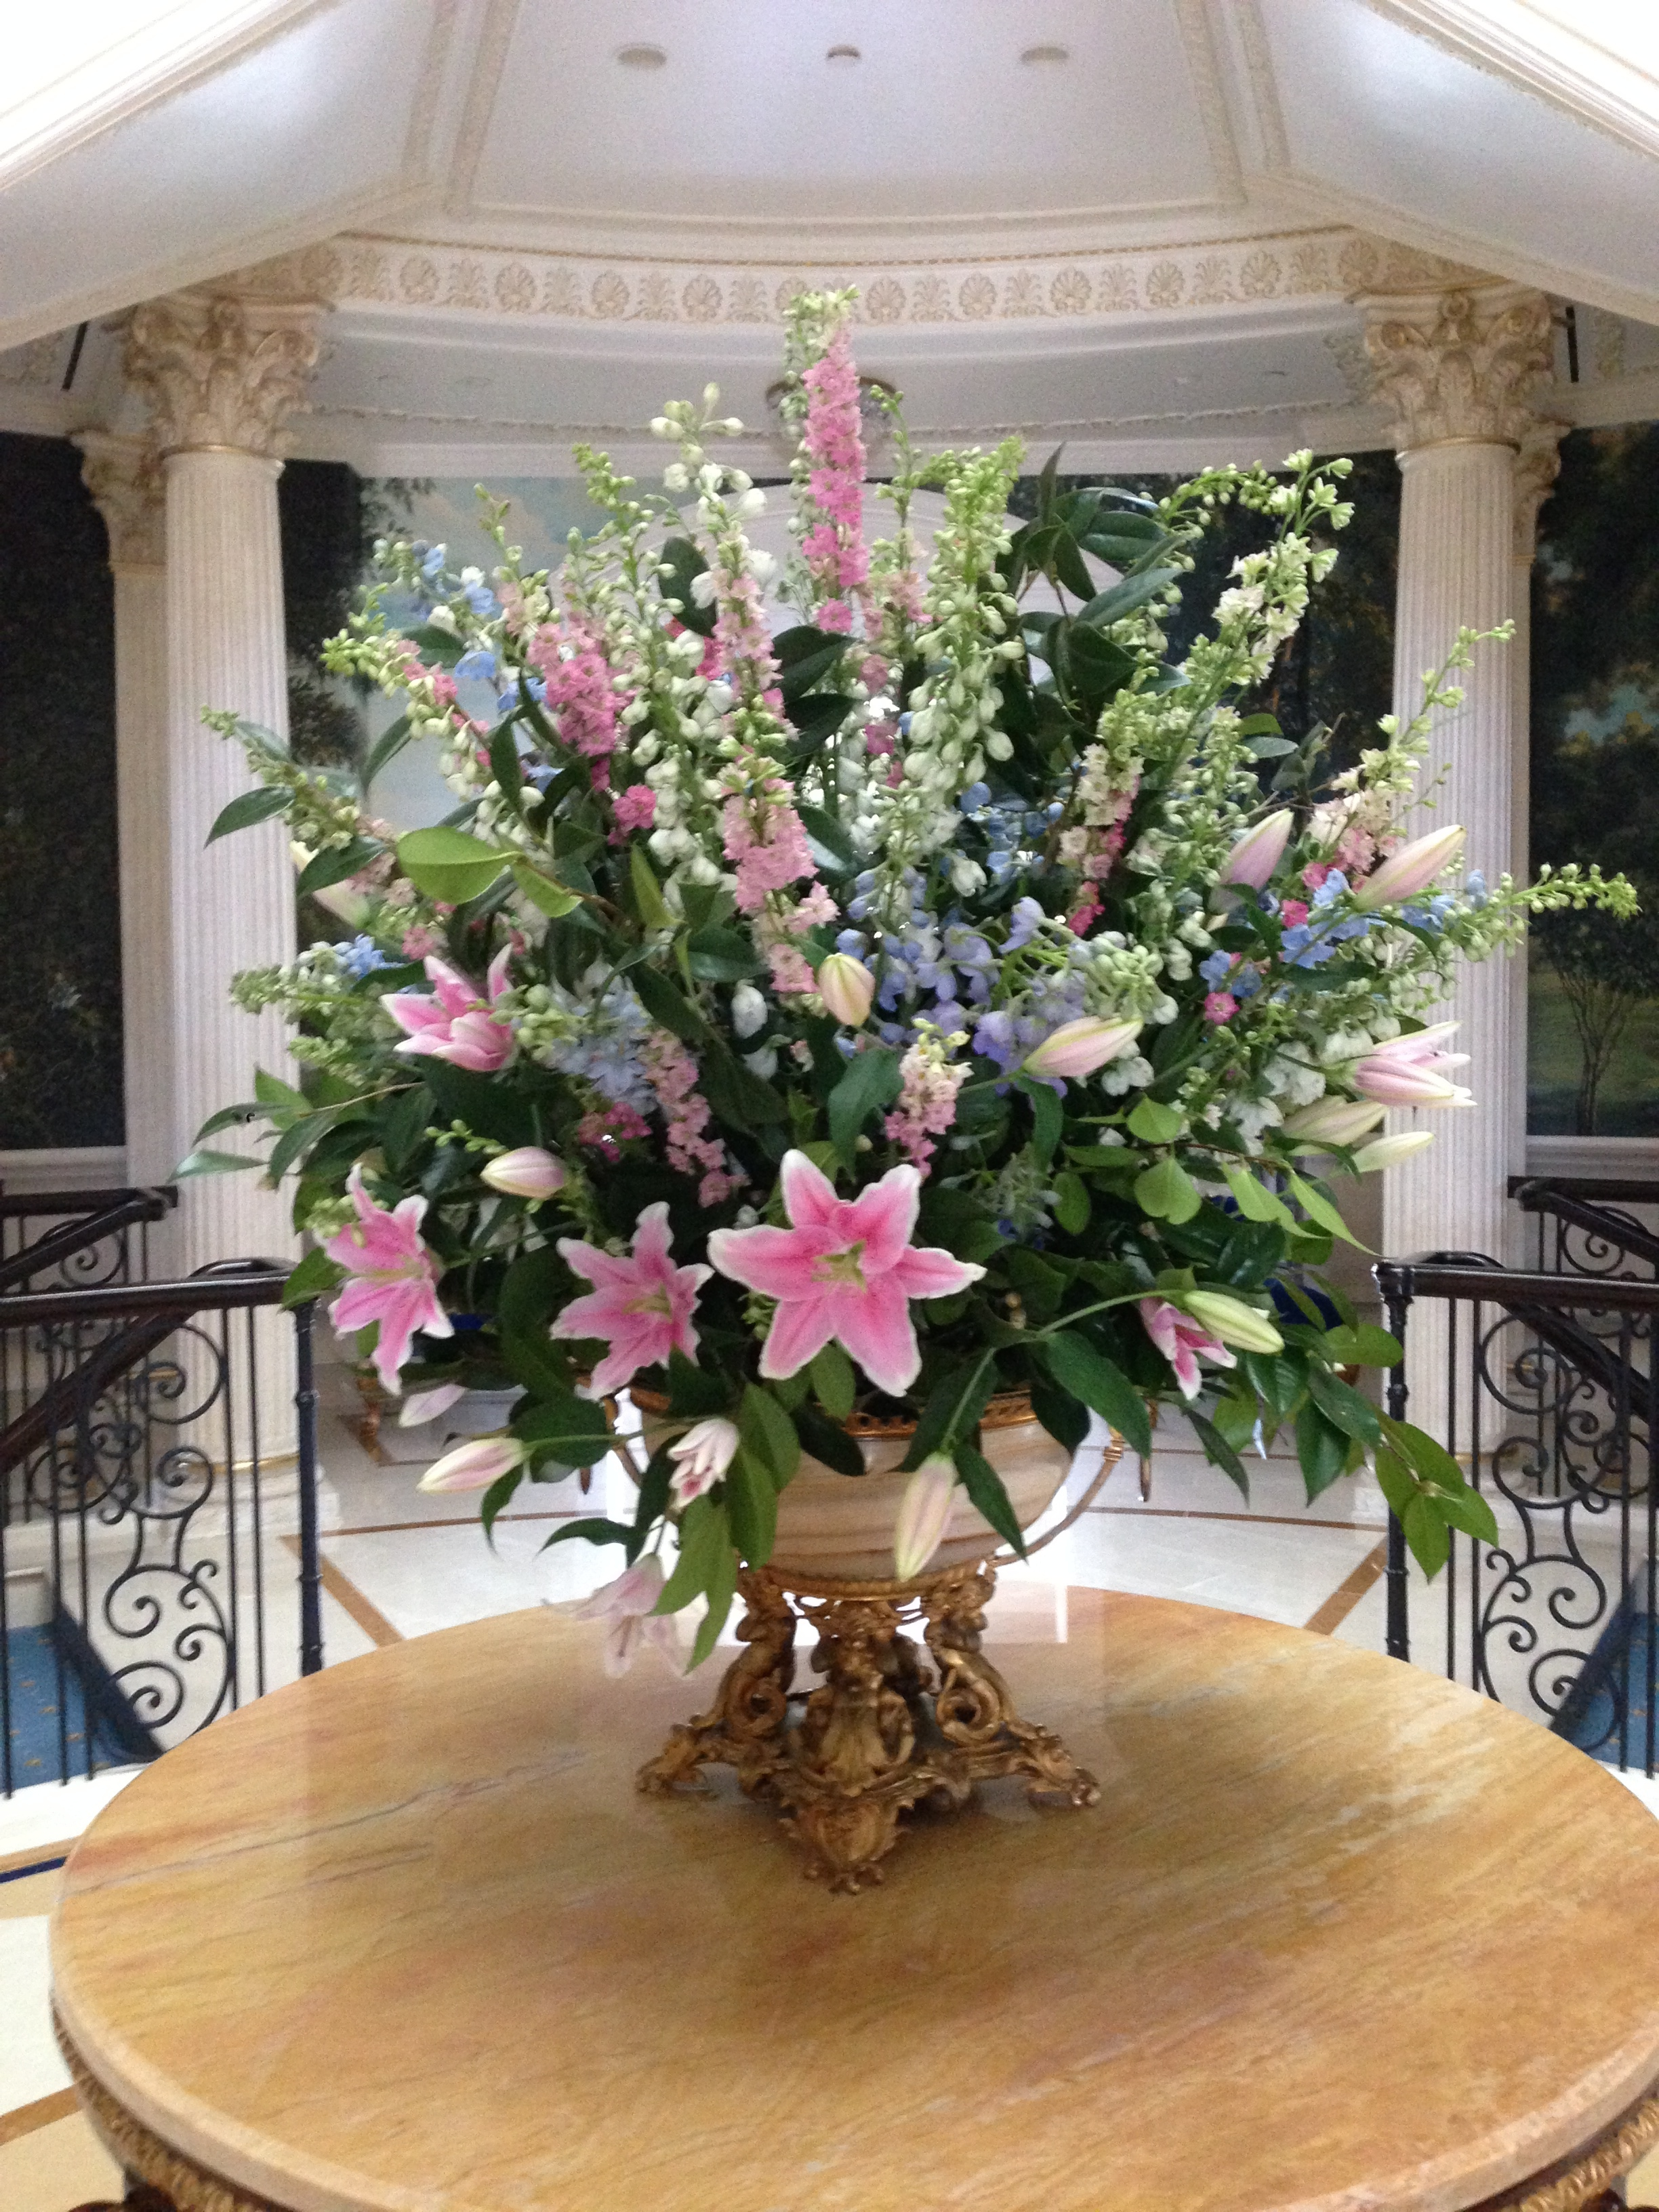 B Floral and Event Design | Full Service Floral Design Company in Maryland, Washington DC, Virginia